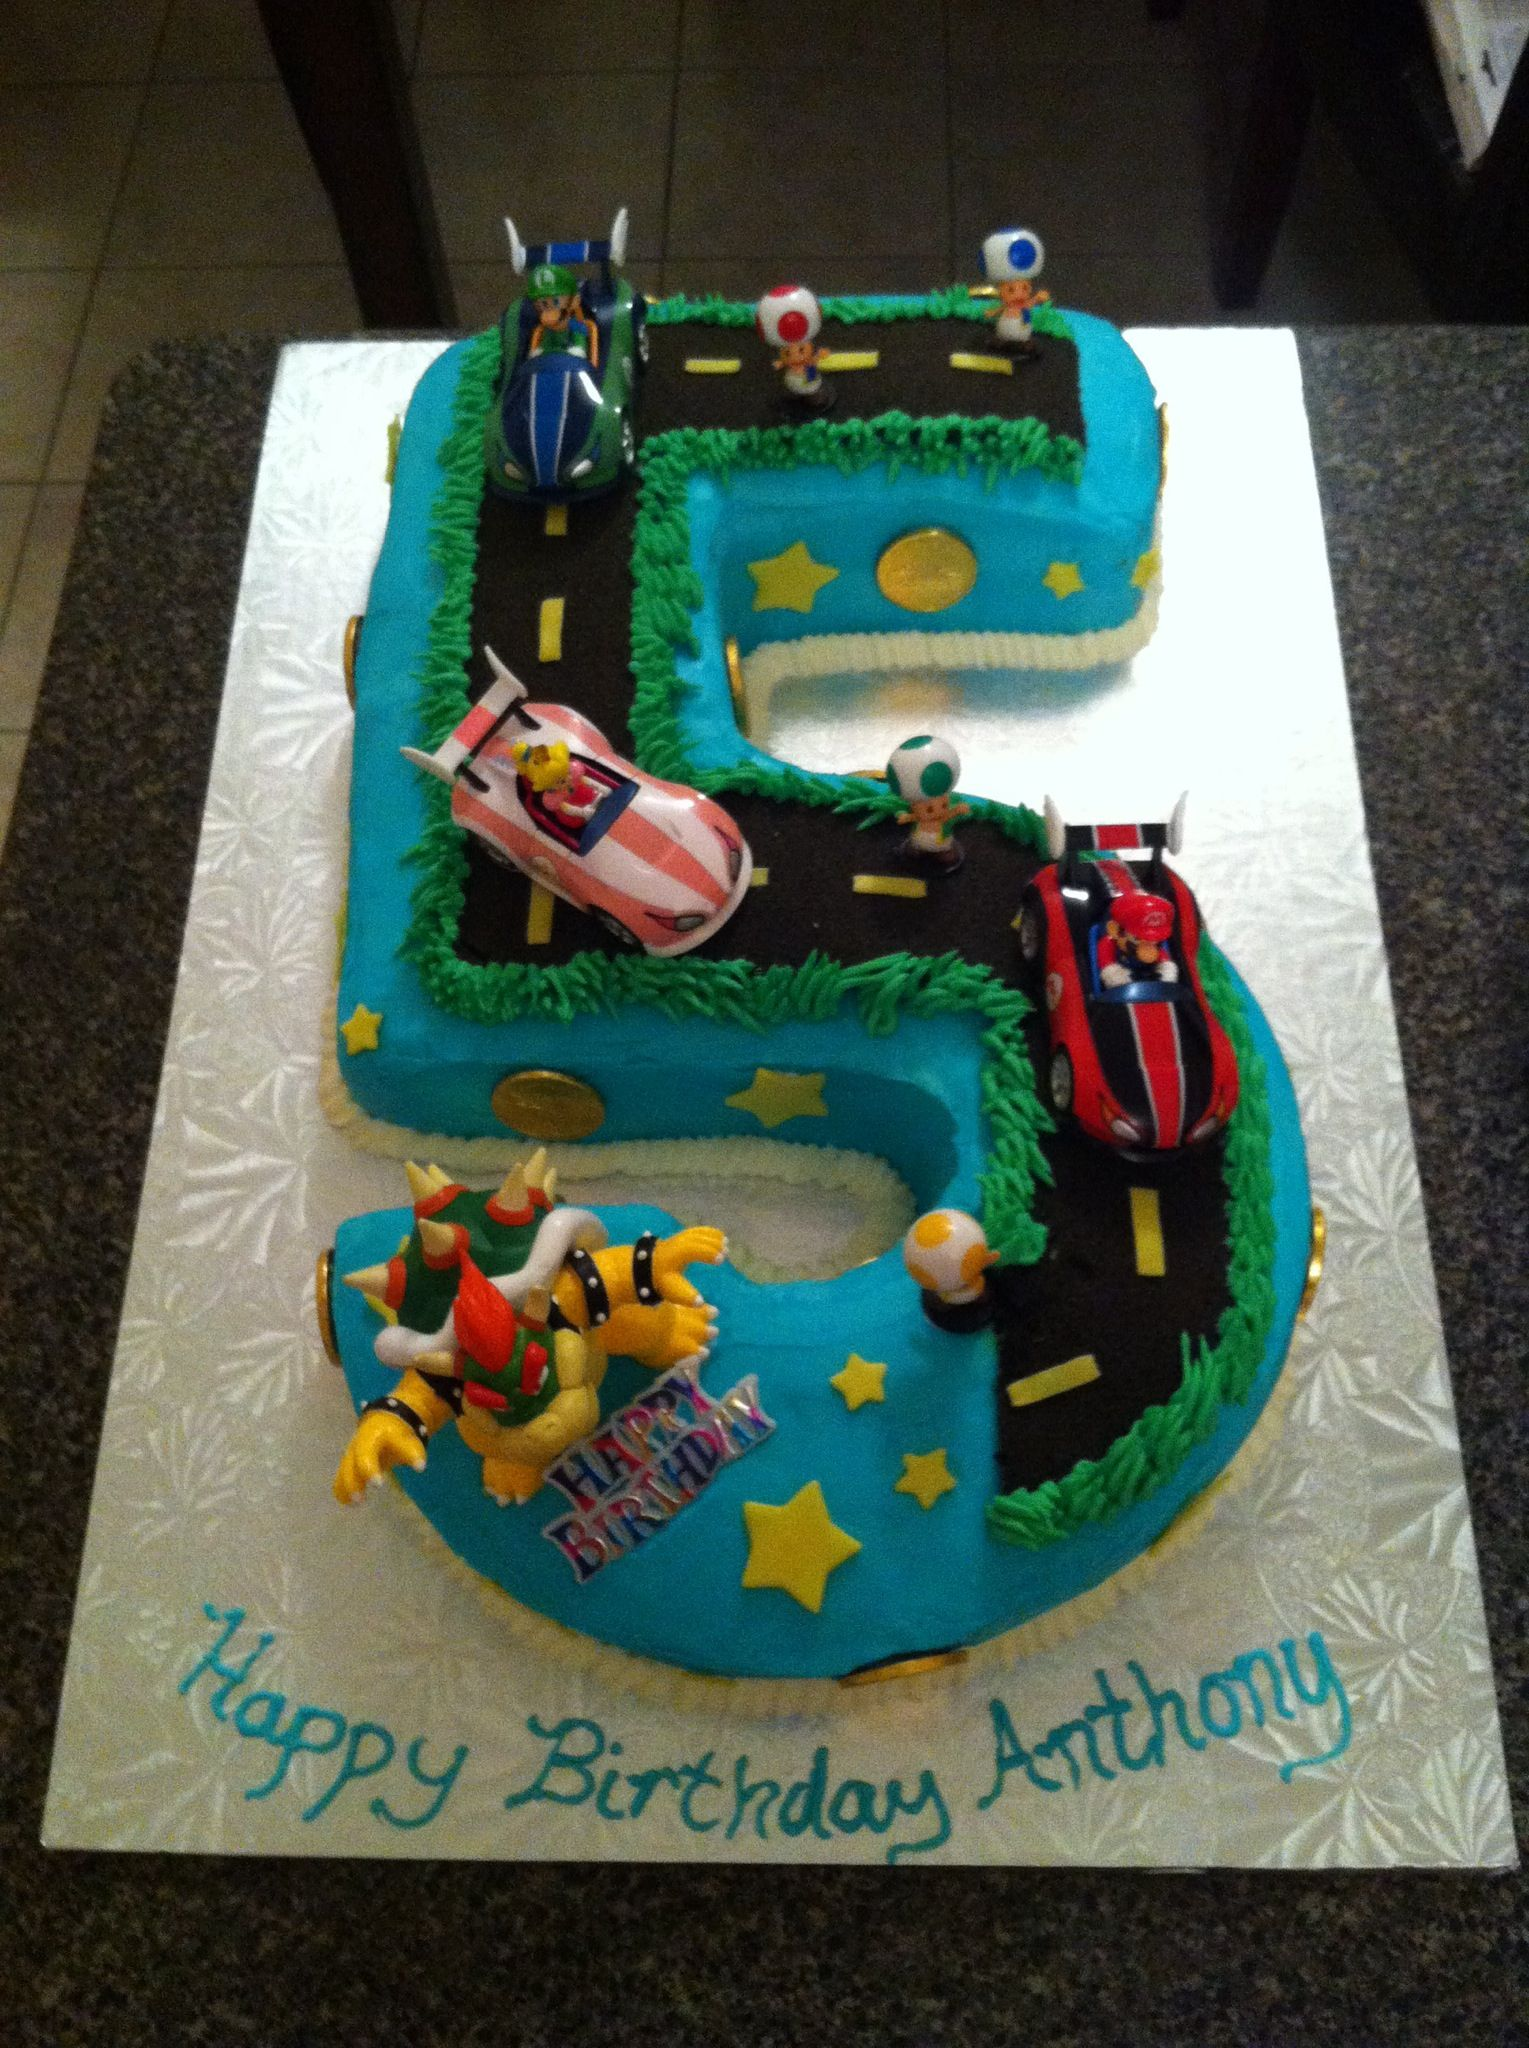 Sensational Mario And Bowser Cake For Anthonys 5Th Birthday Top View Funny Birthday Cards Online Alyptdamsfinfo